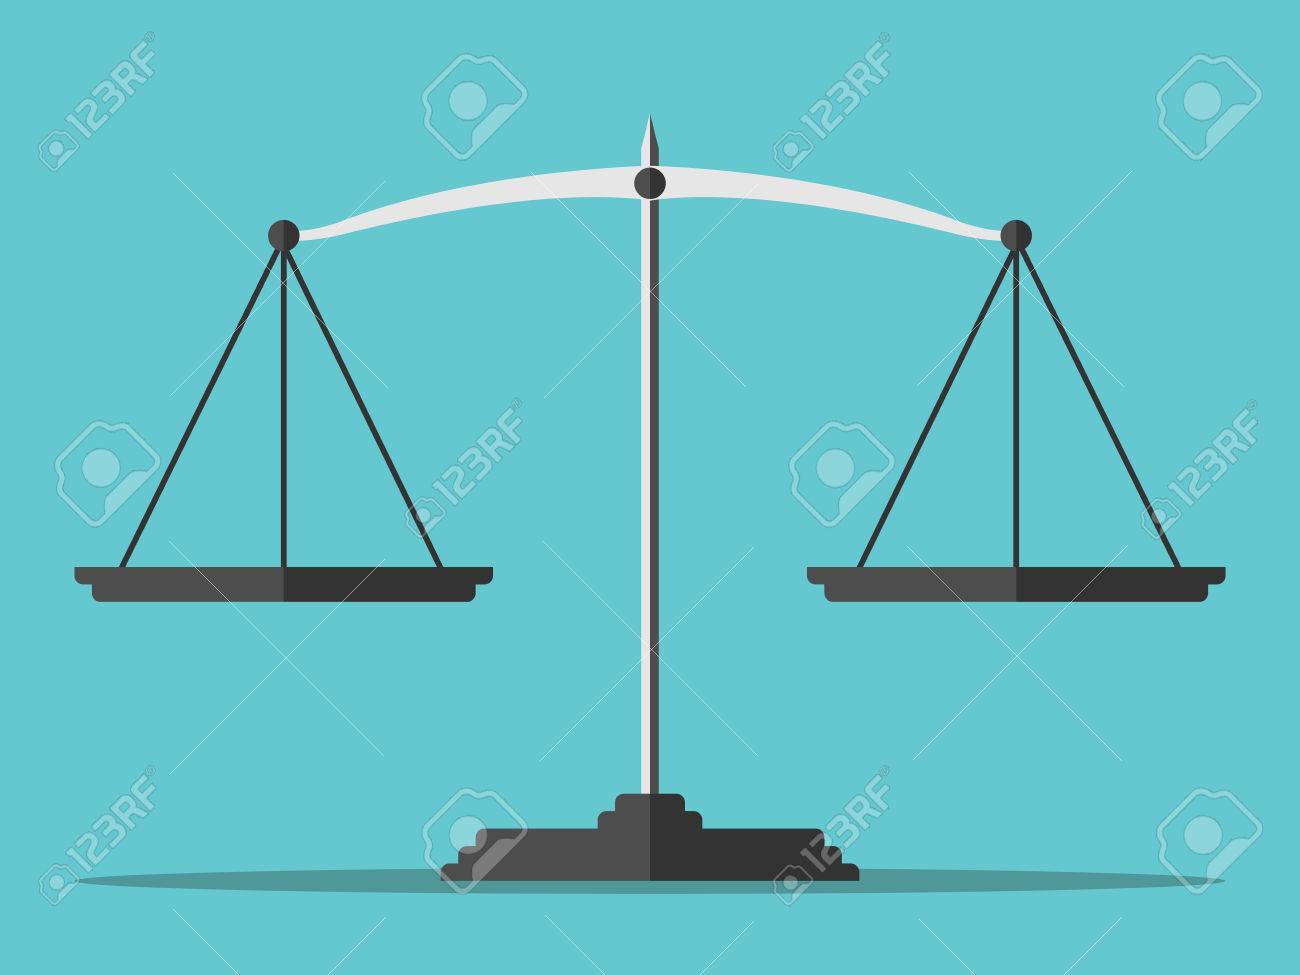 Empty scales on blue background. - 51635626